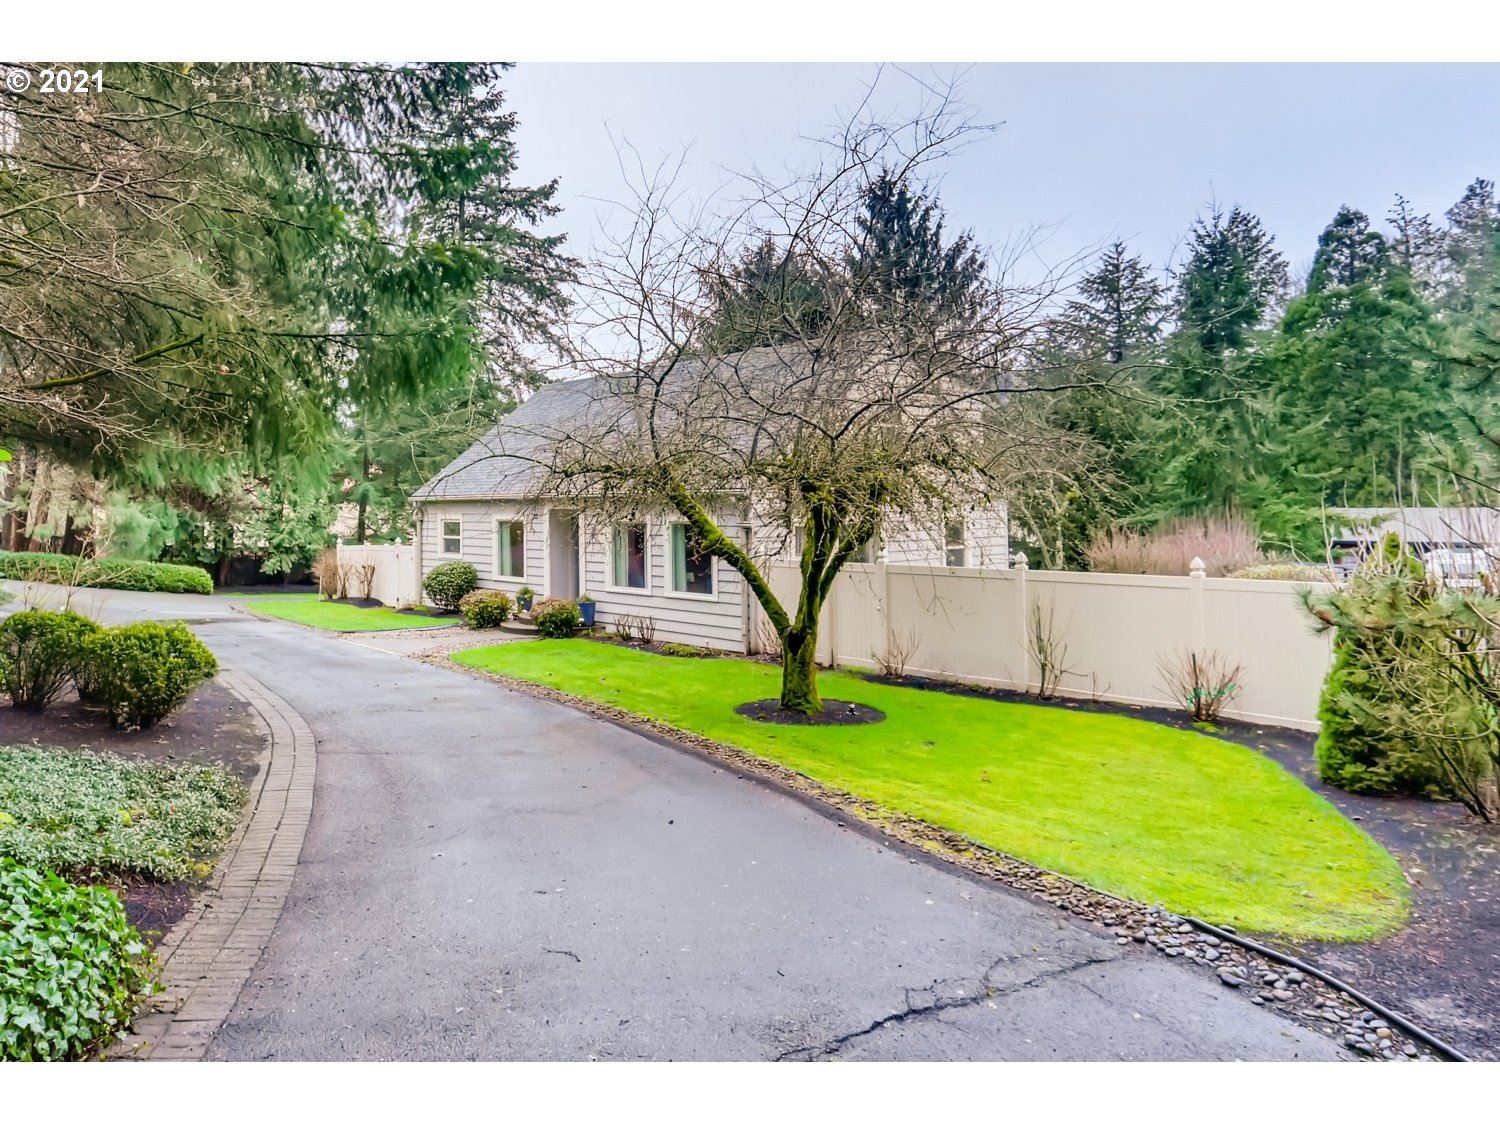 Photo for 12645 BOONES FERRY RD, Lake Oswego, OR 97035 (MLS # 21186477)